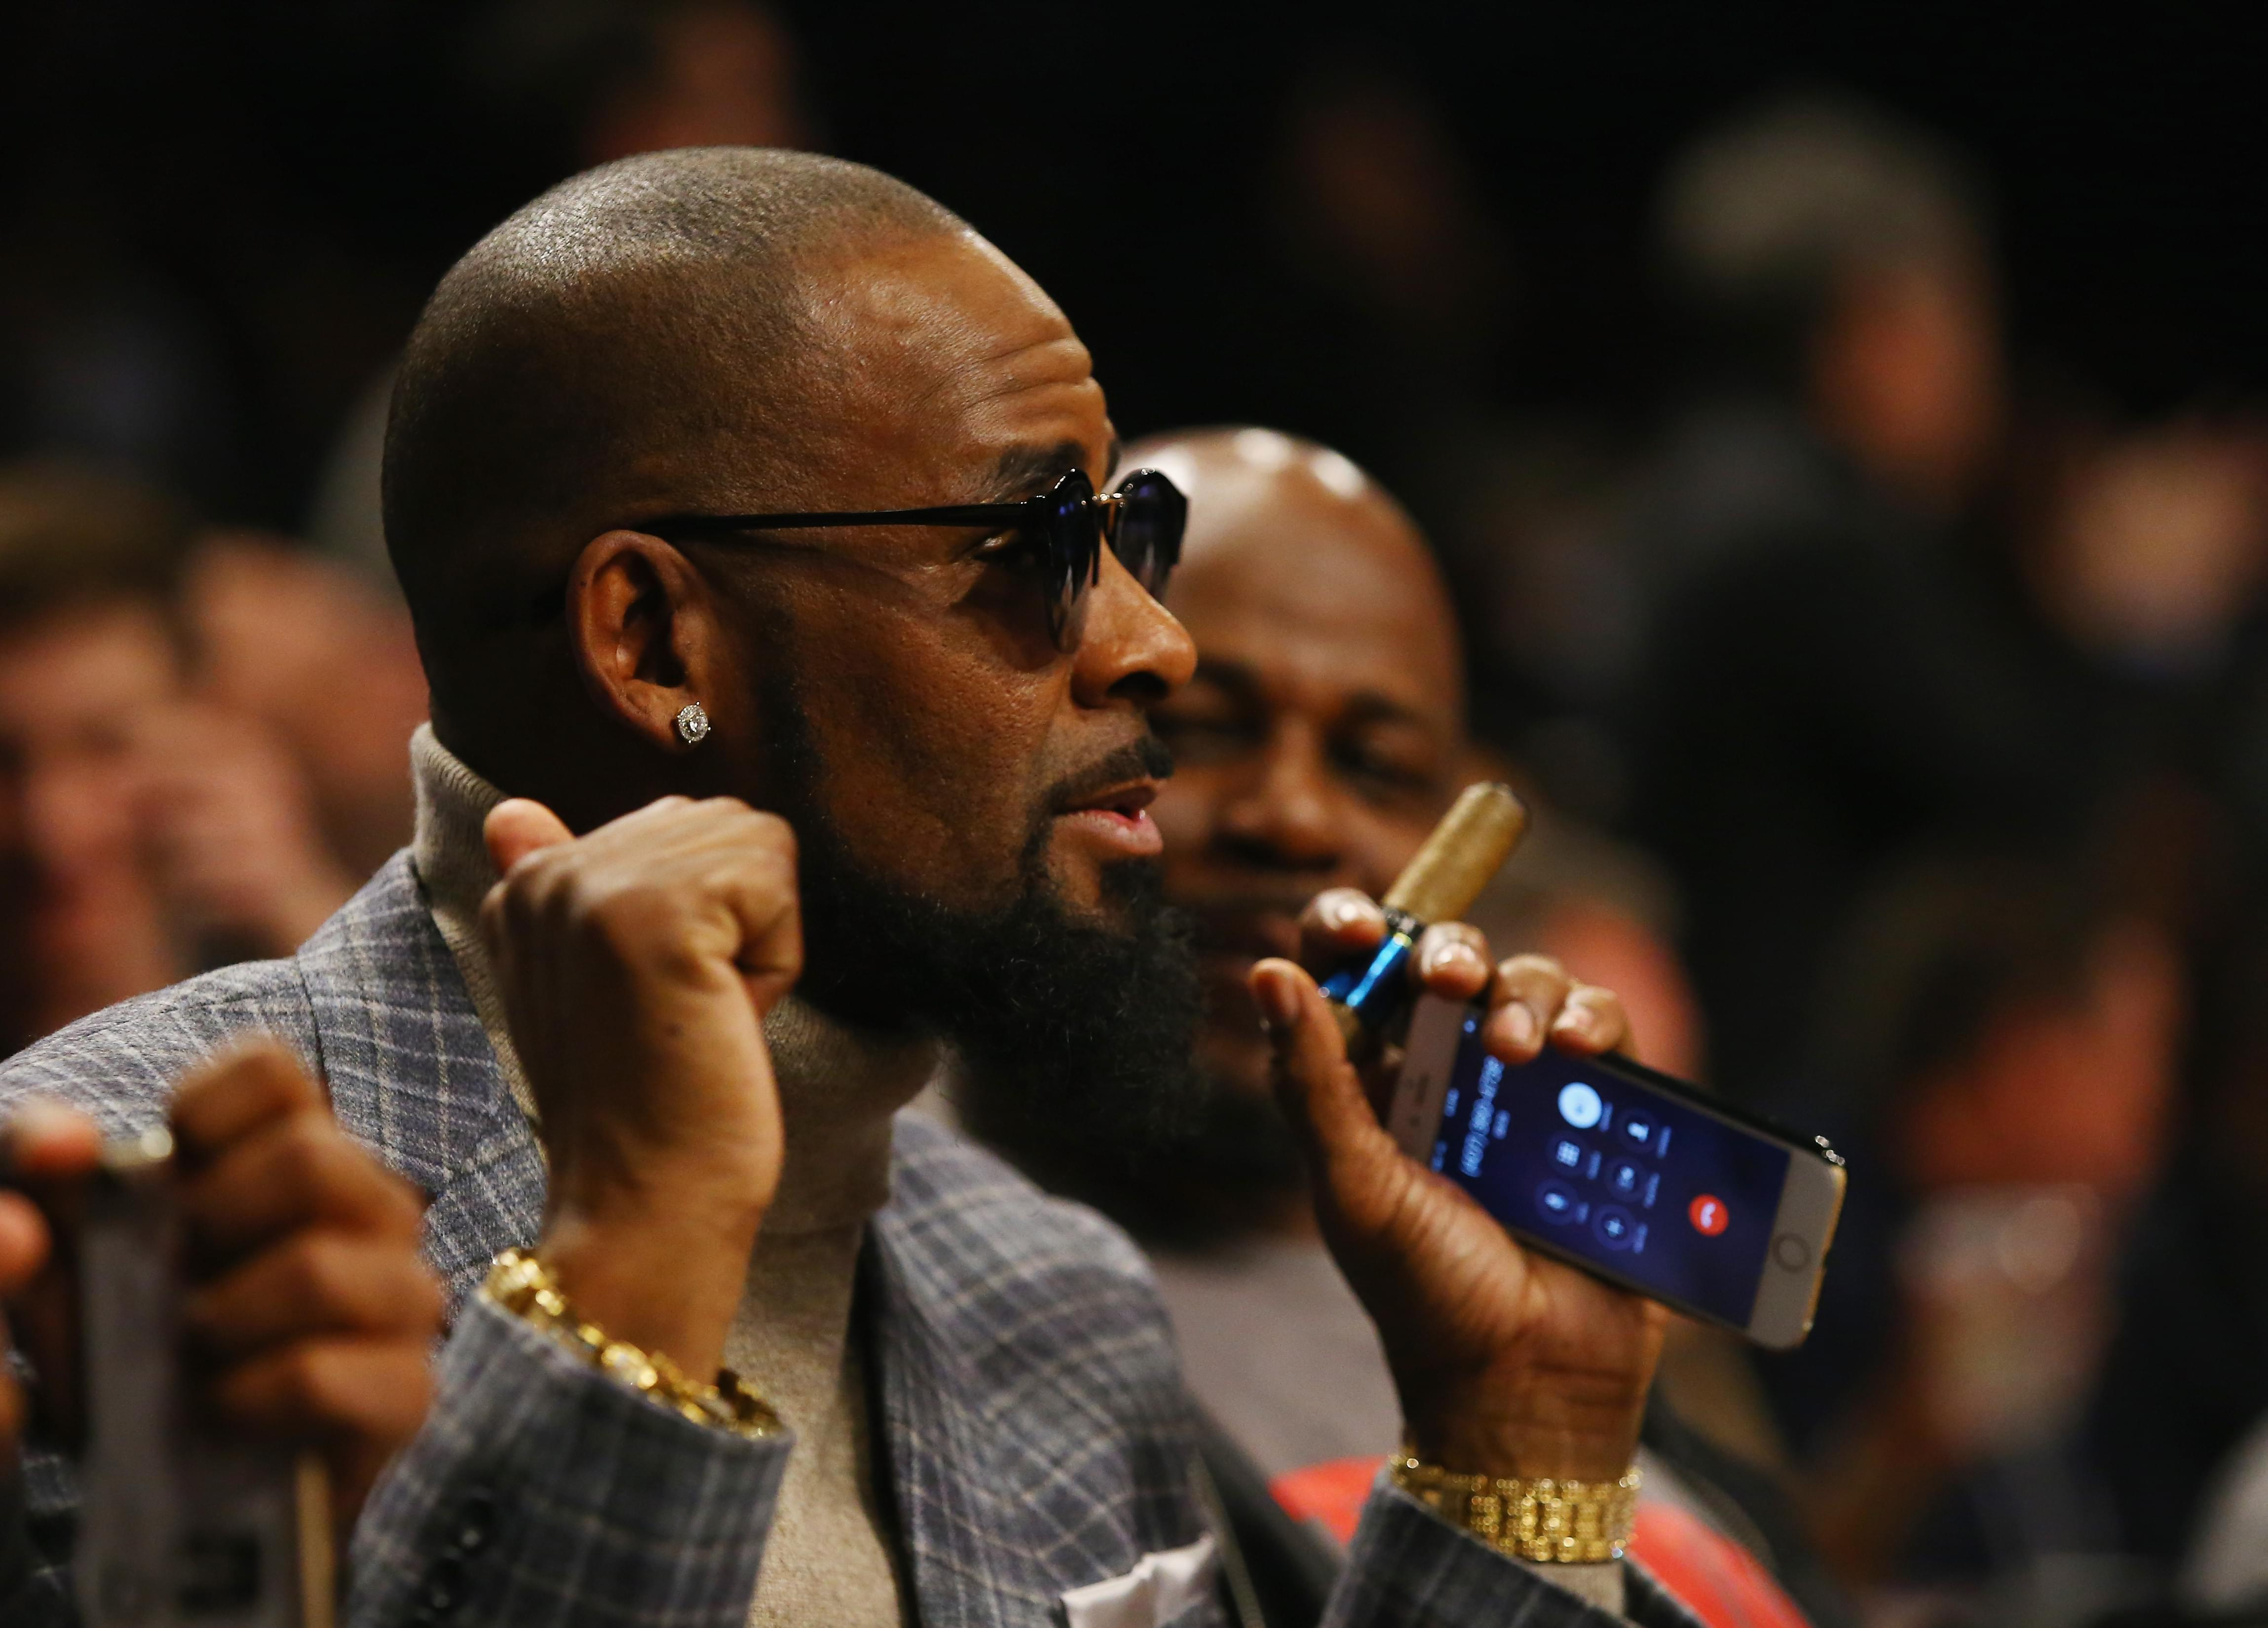 Grand jury seated in wake of new R. Kelly allegations, sources say